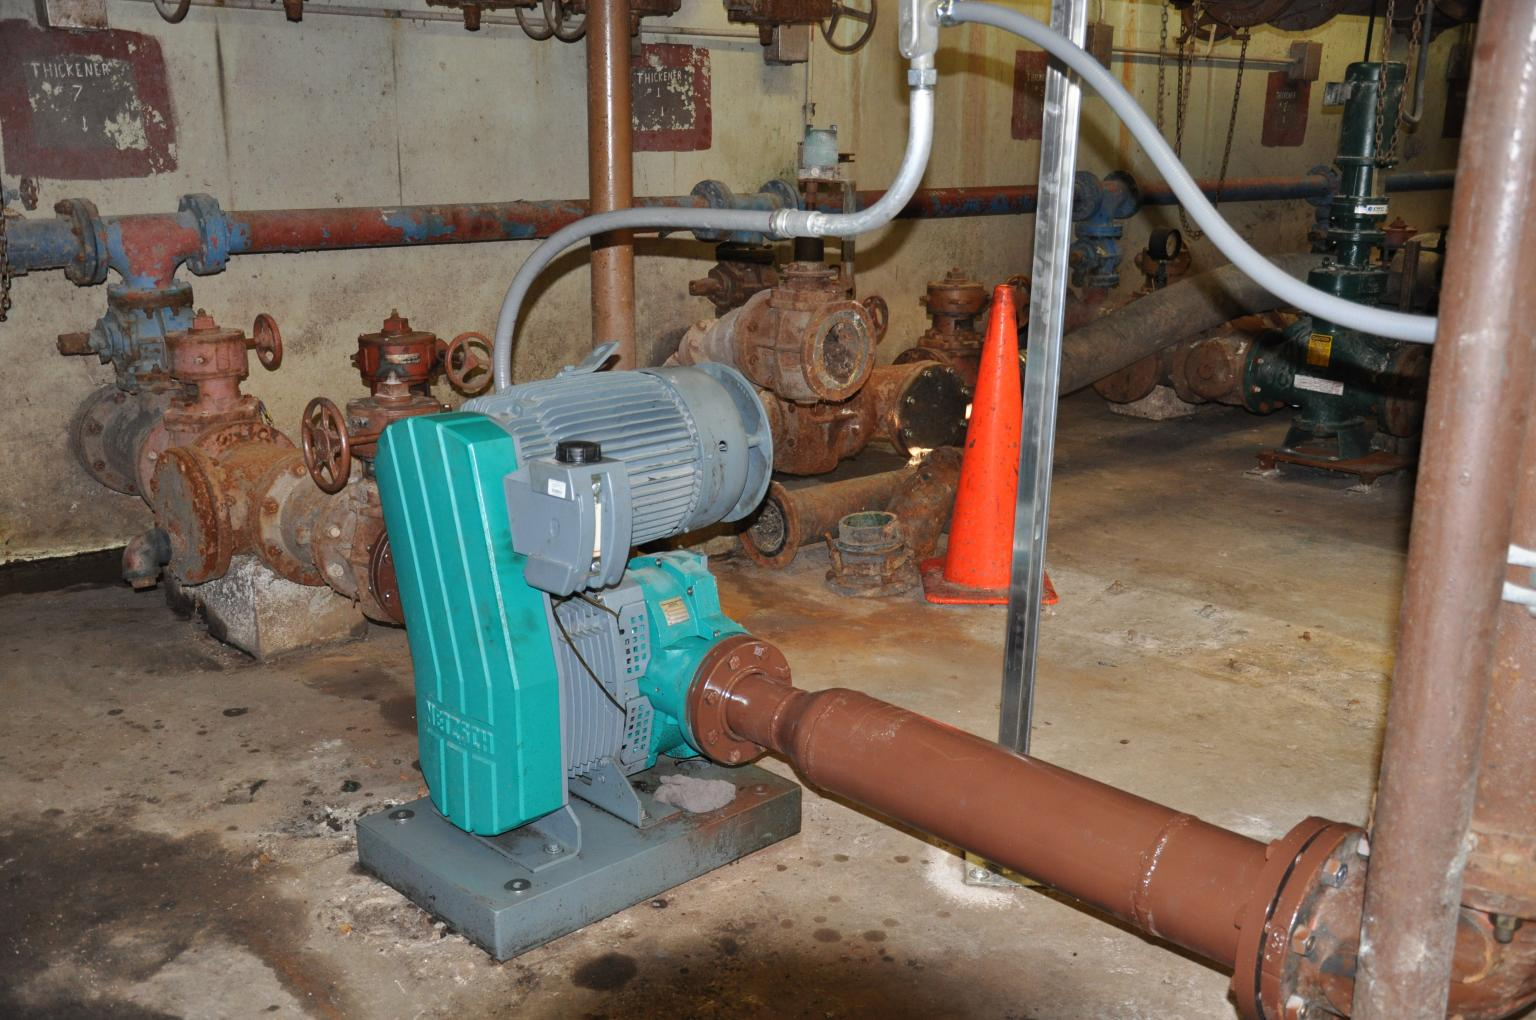 The large front cover can be easily removed and gives open access to the entire pump chamber to facilitate maintenance